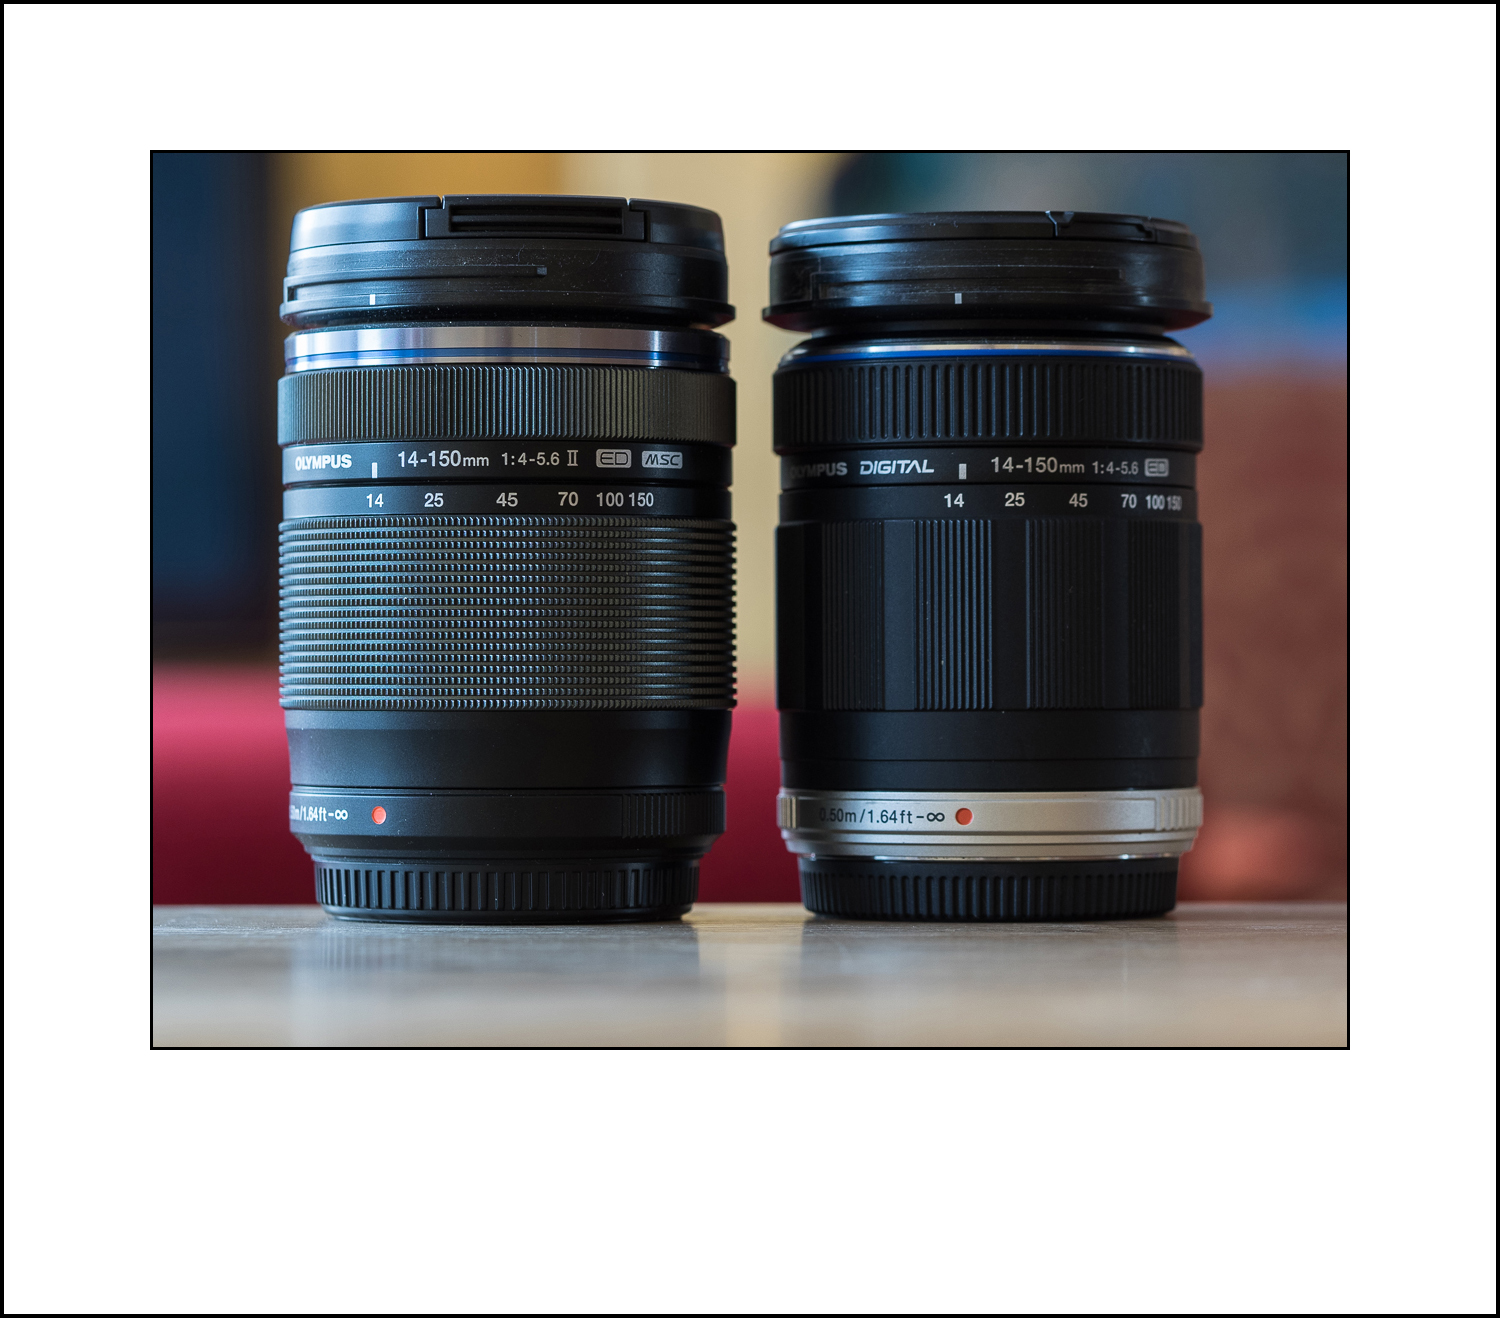 The two Olympus 14-150 lenses